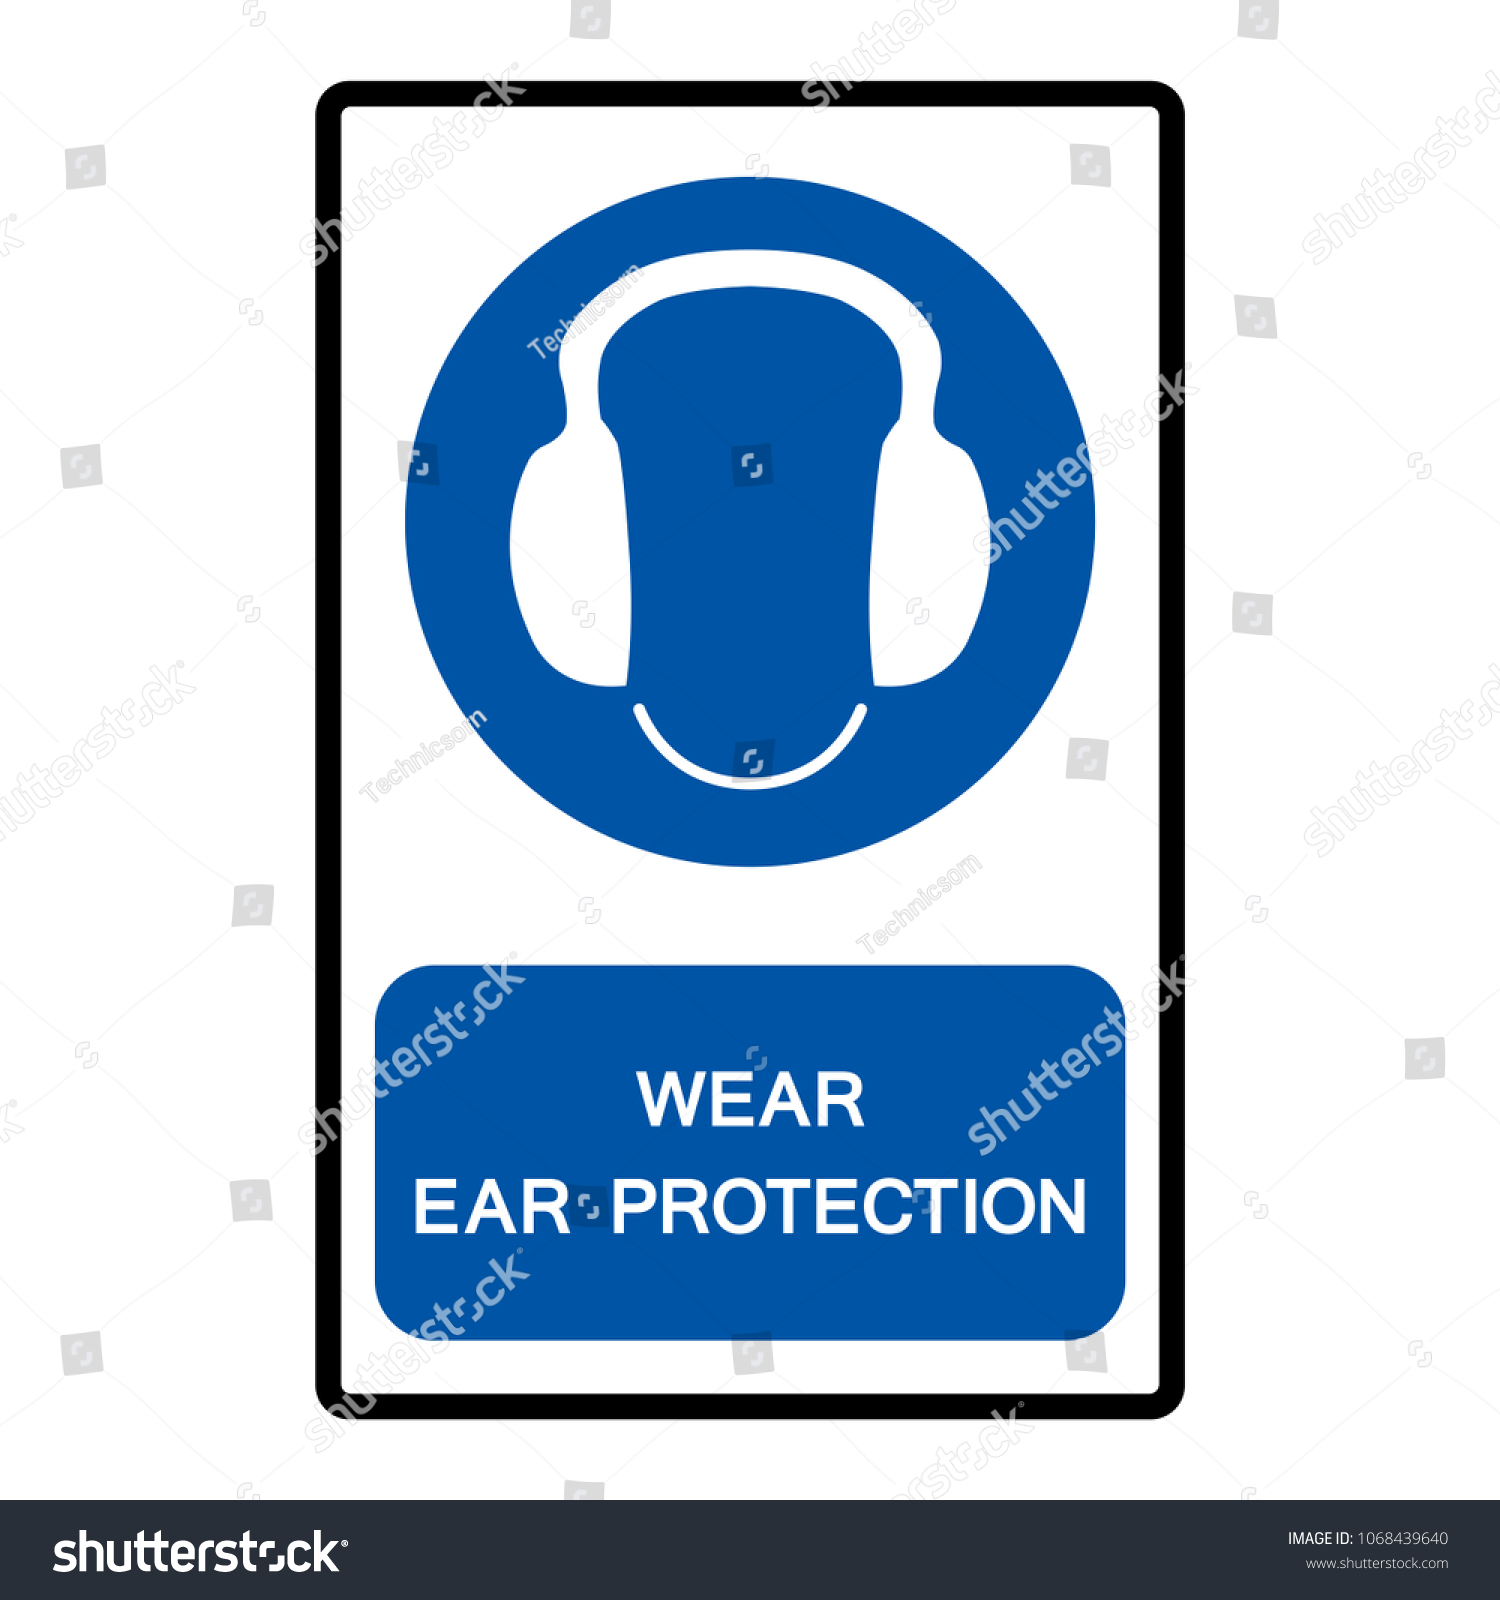 Wear Ear Protection Symbol Vector Illustration Stock Vector Royalty